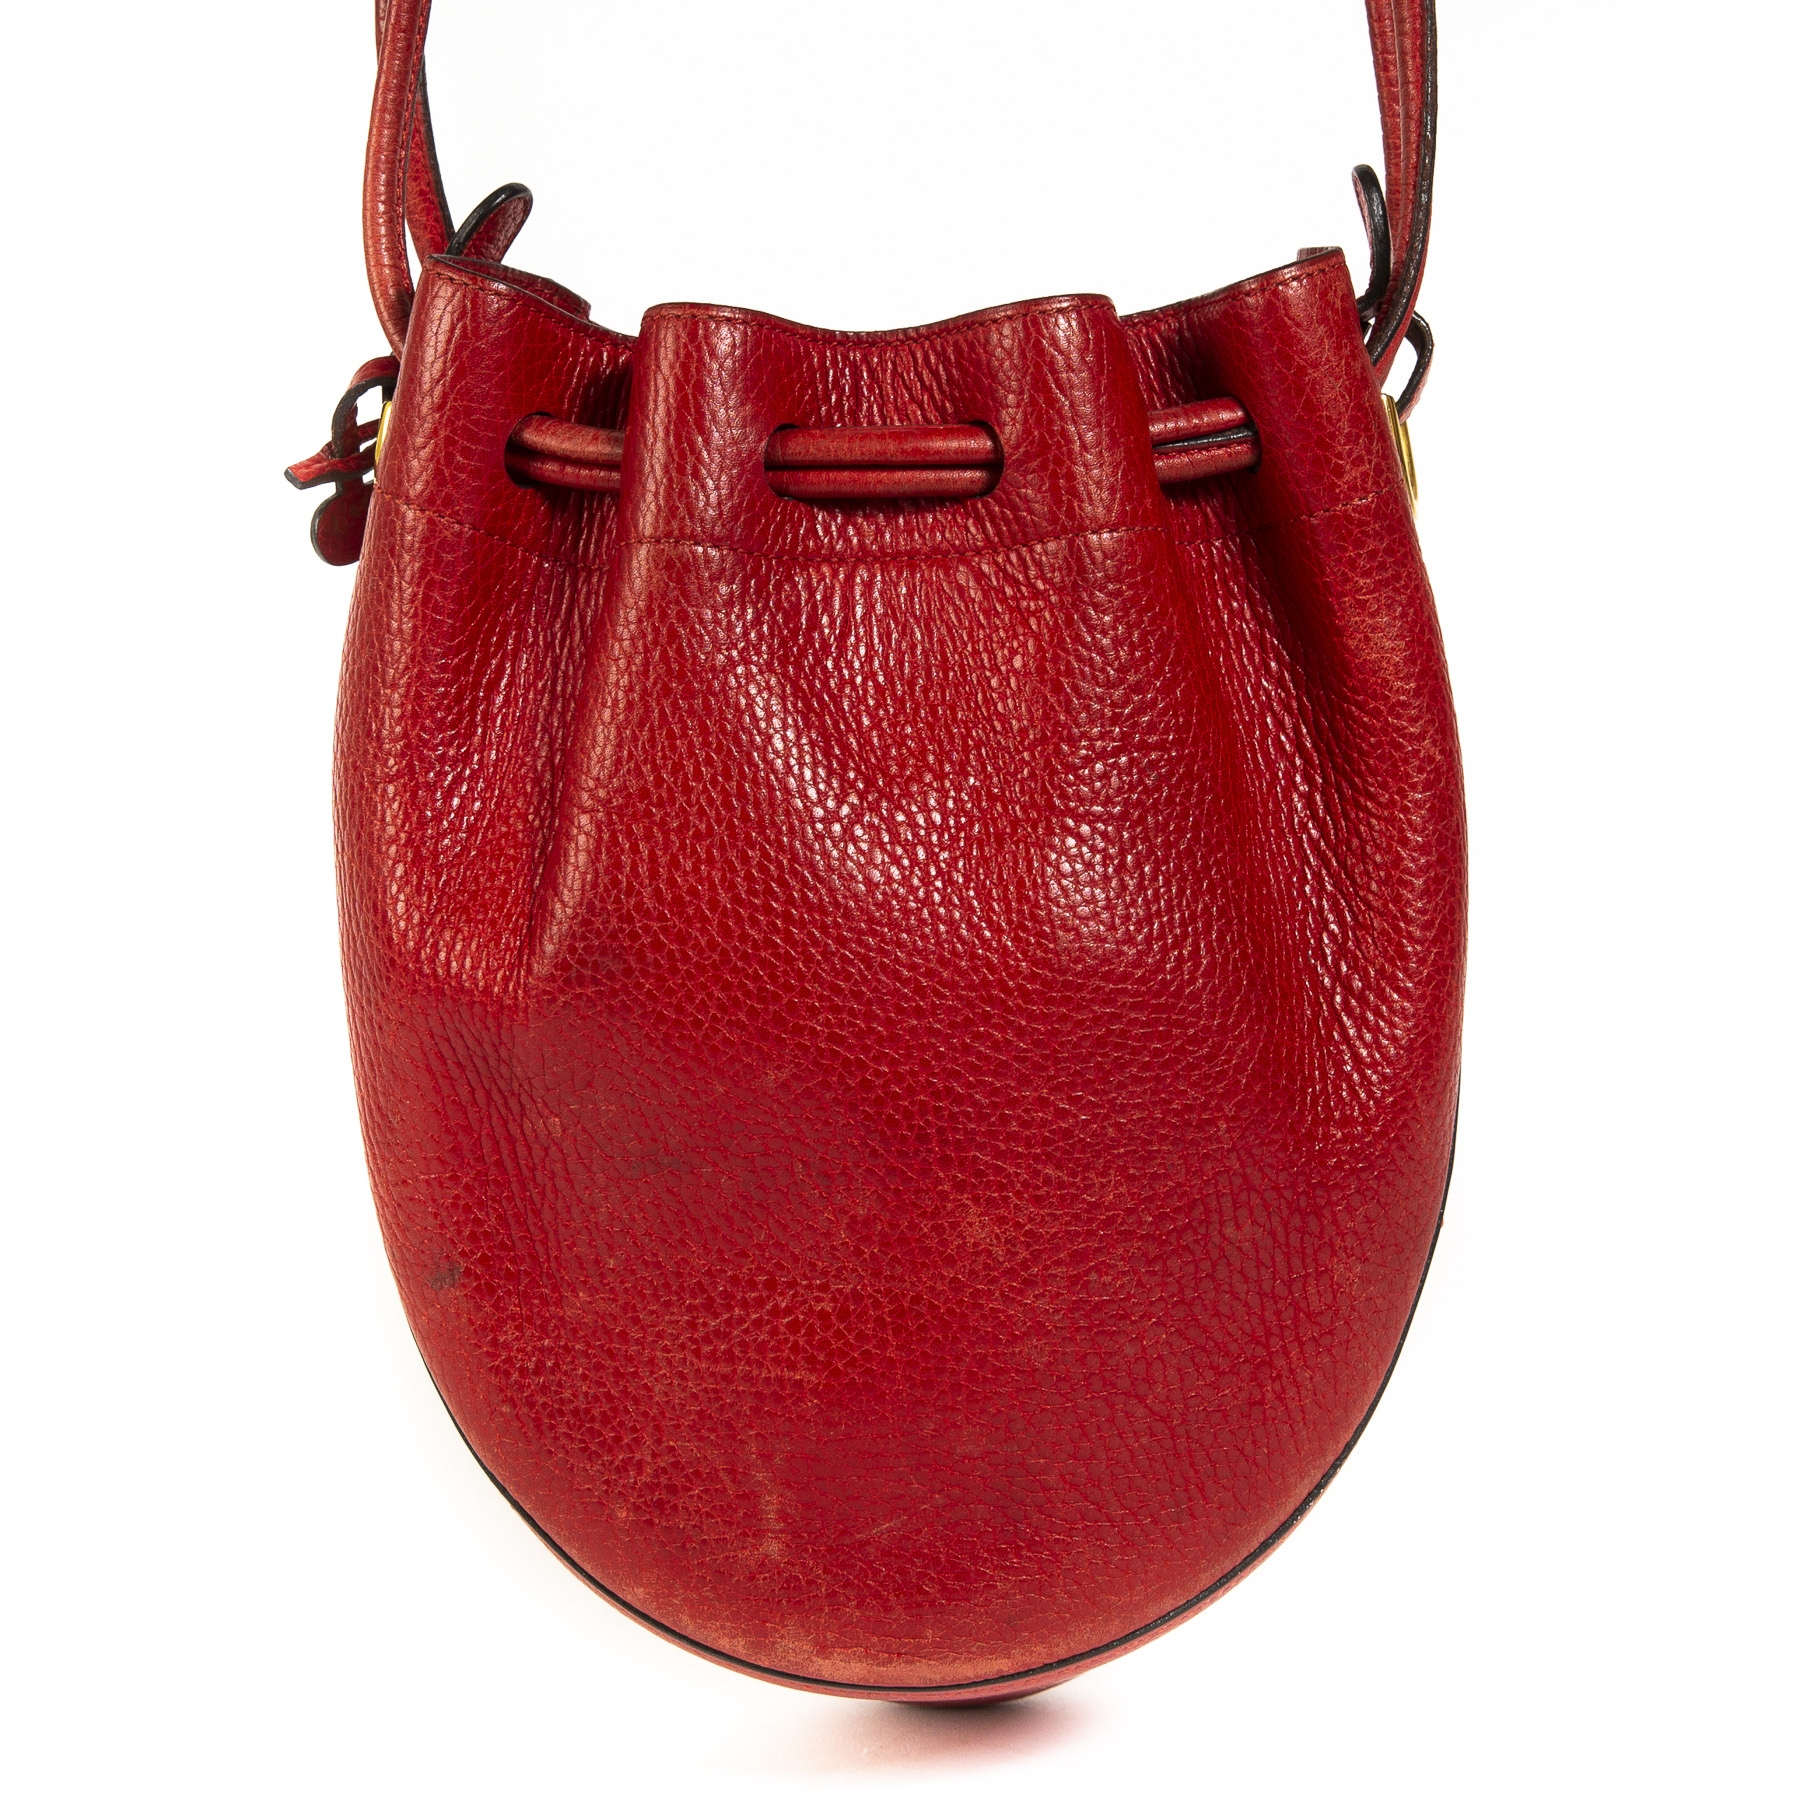 Delvaux Red Leather Bucket Bag